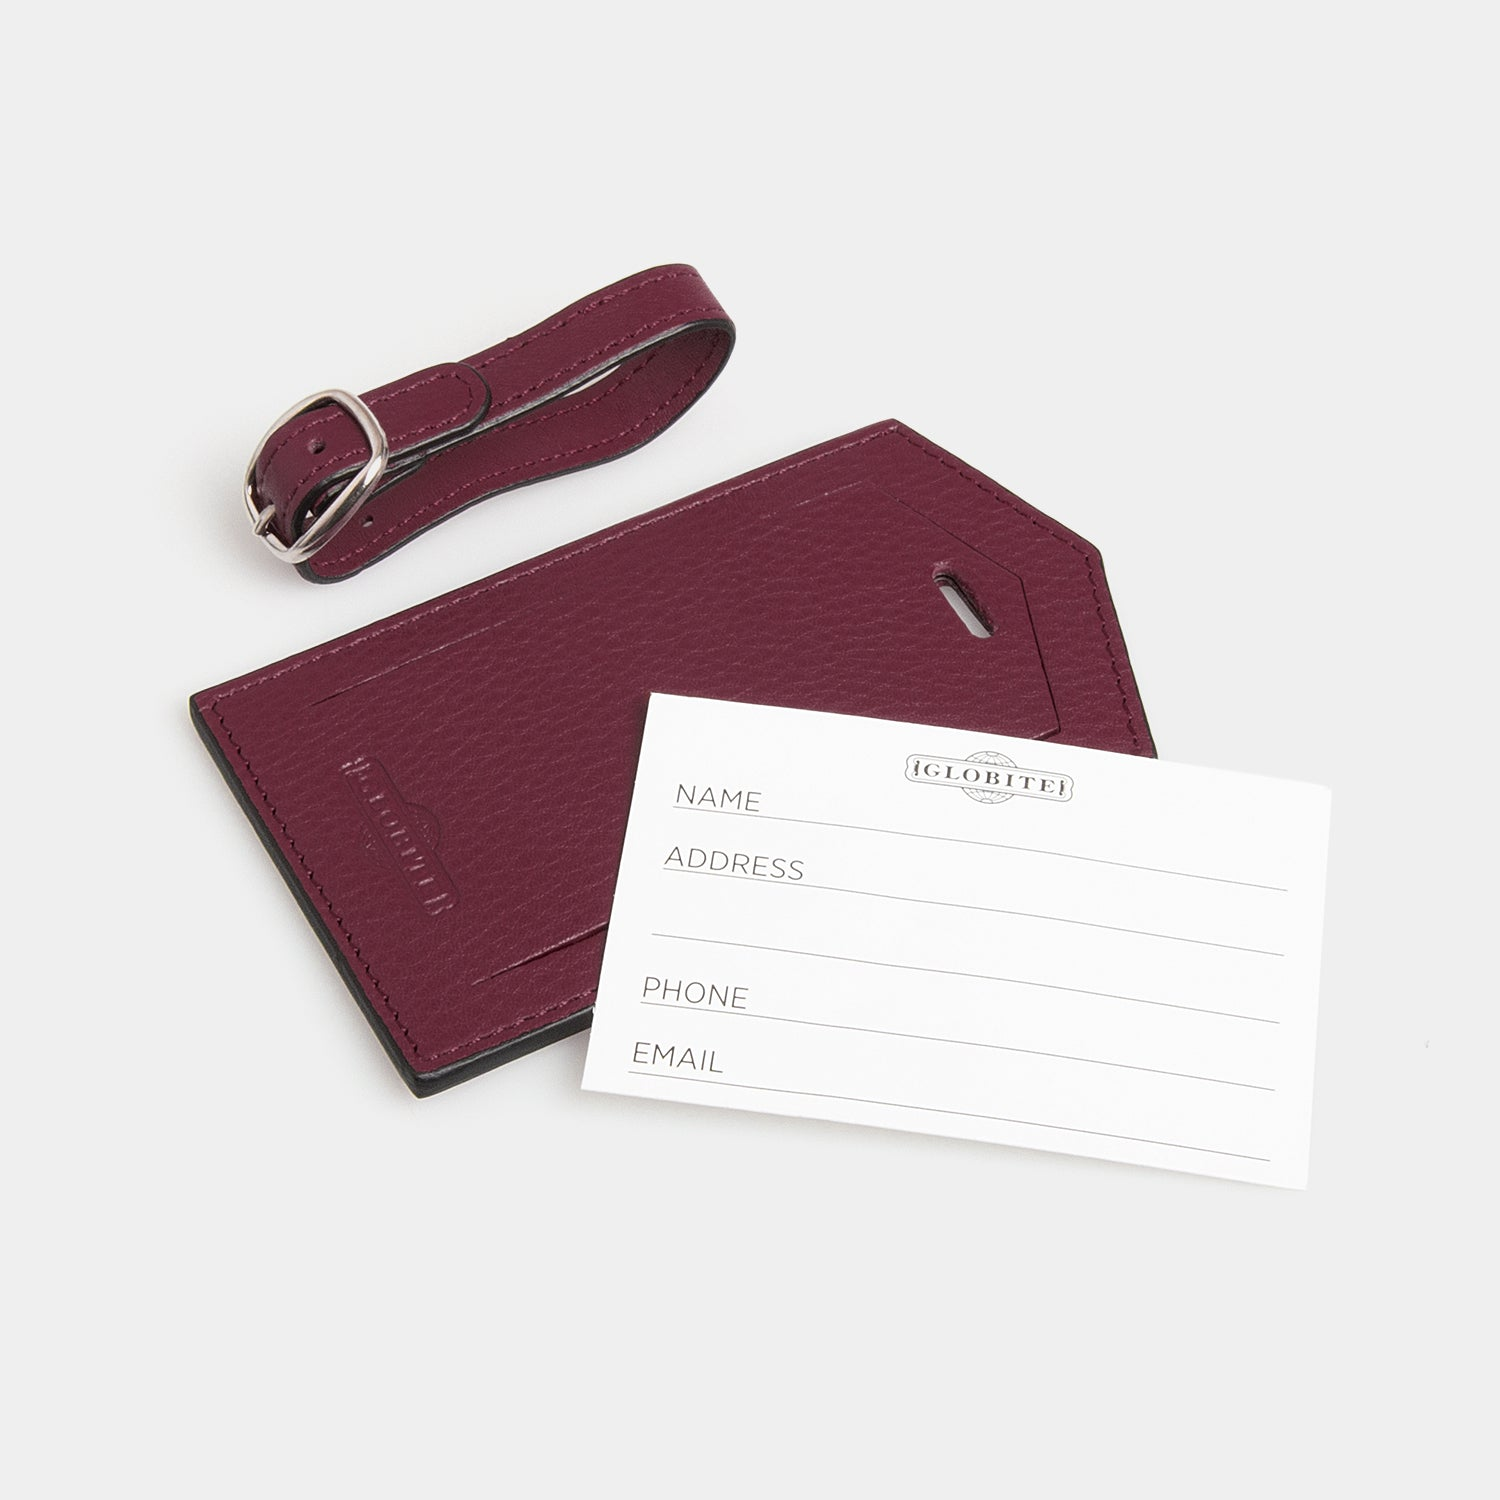 Barossa Mulberry Travel Wallet Bundle